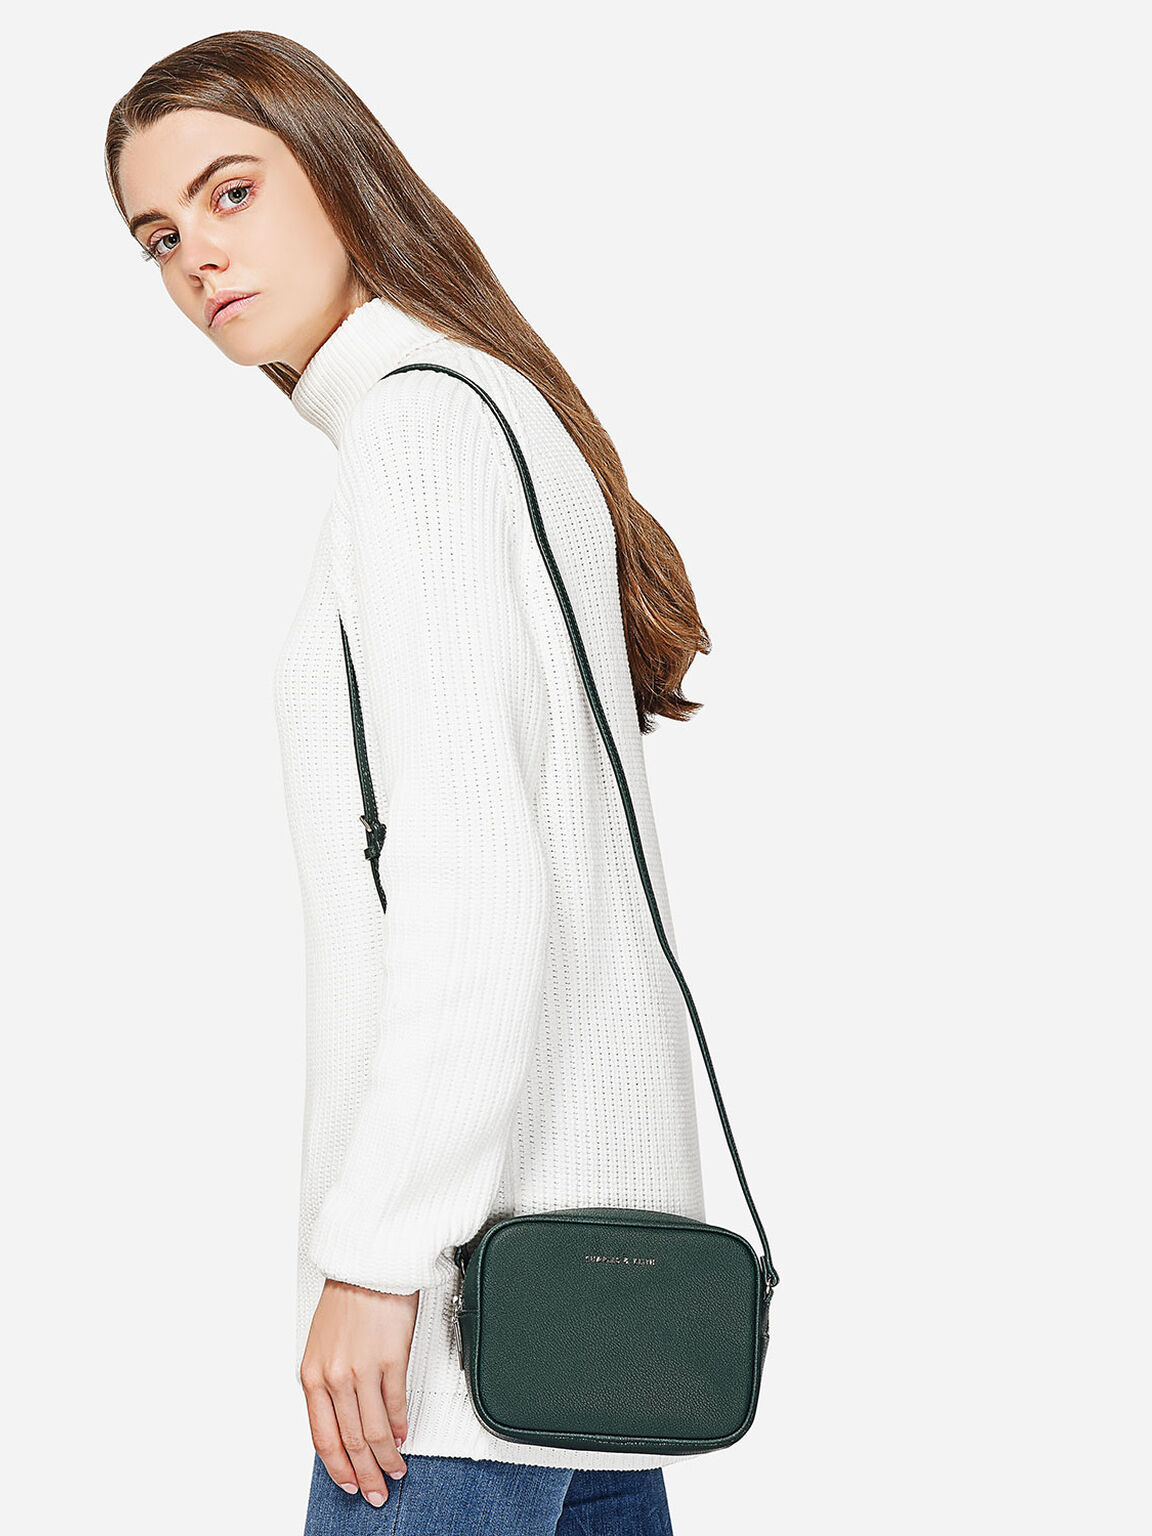 Rectangular Sling Bag, Green, hi-res